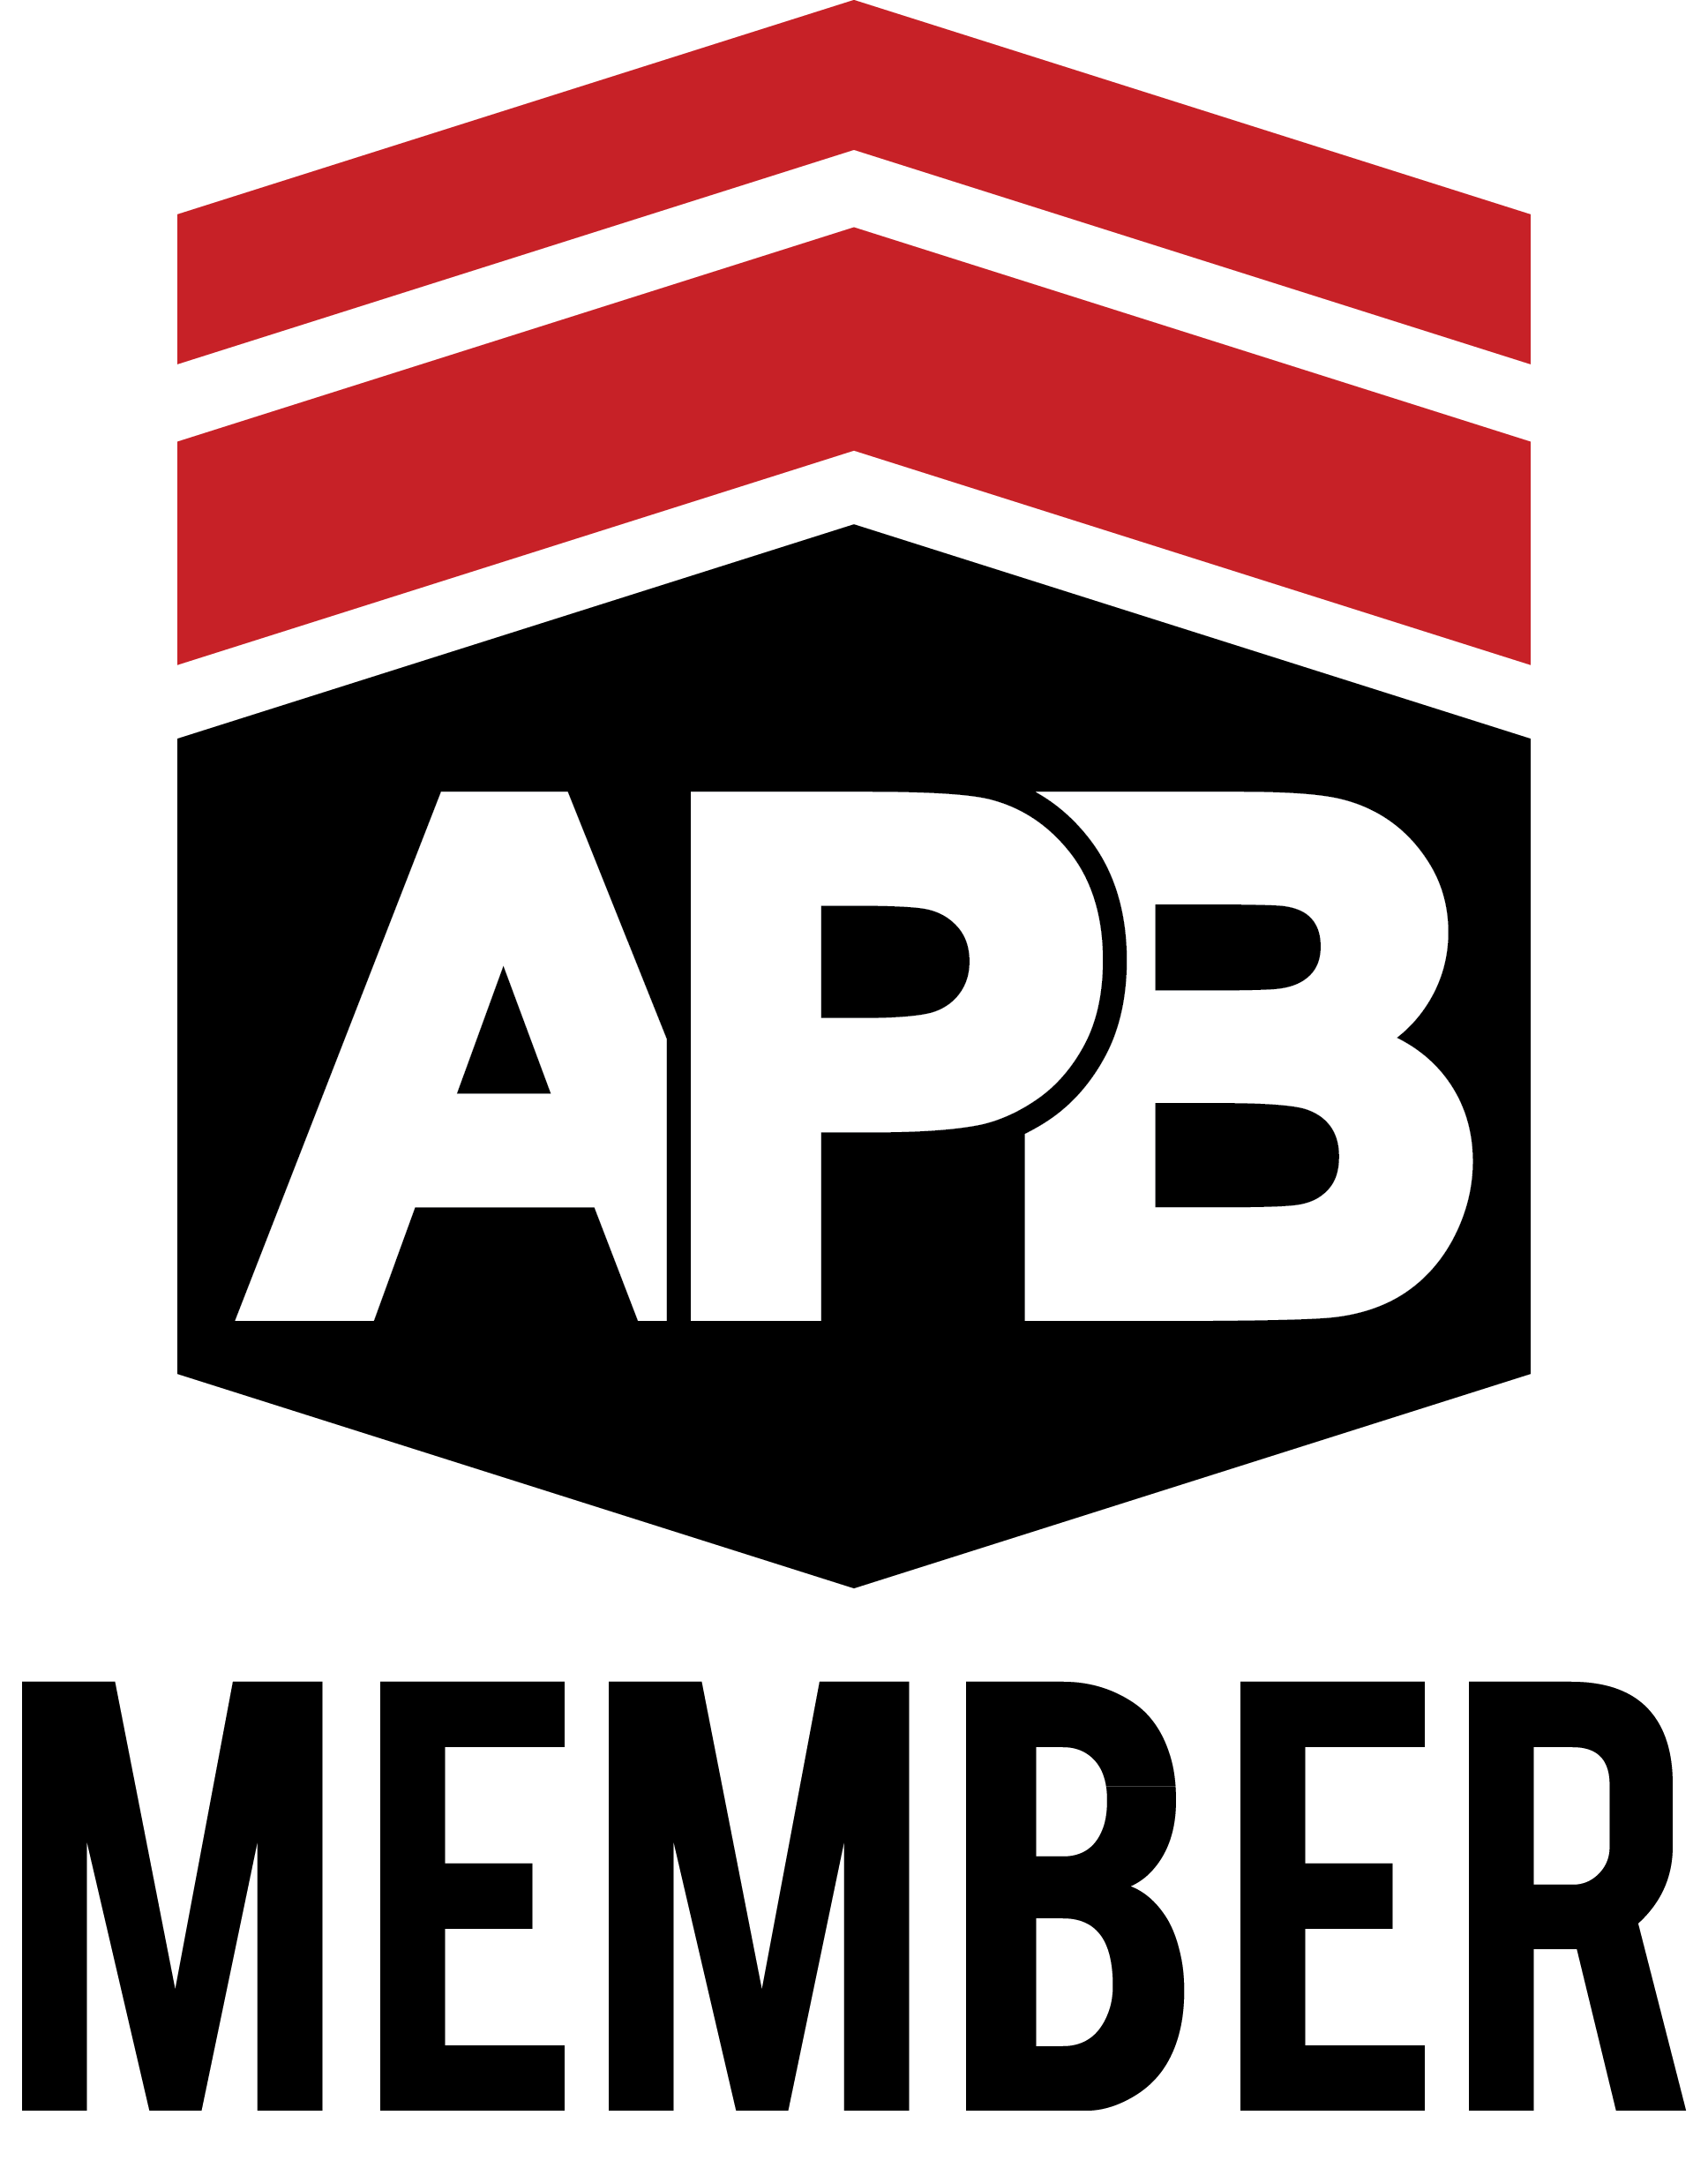 Association of Professional Builders logo